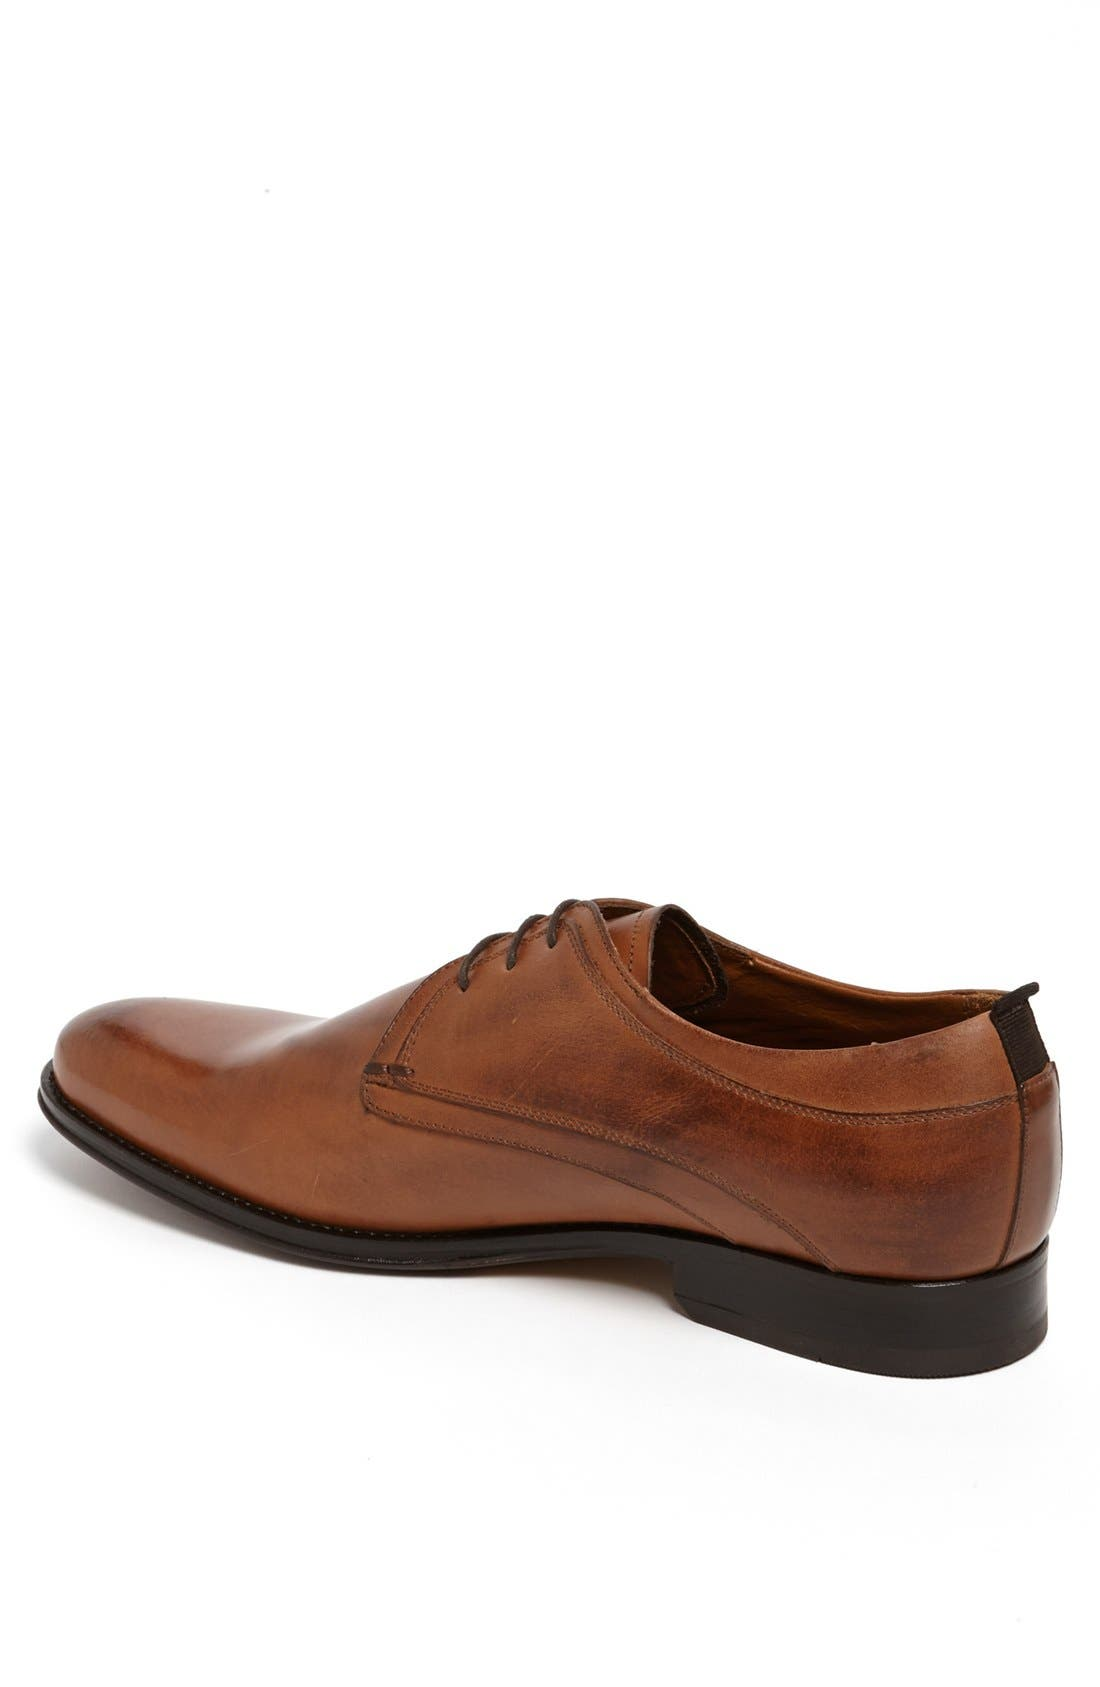 Alternate Image 2  - ALDO 'Tumma' Plain Toe Derby (Men)